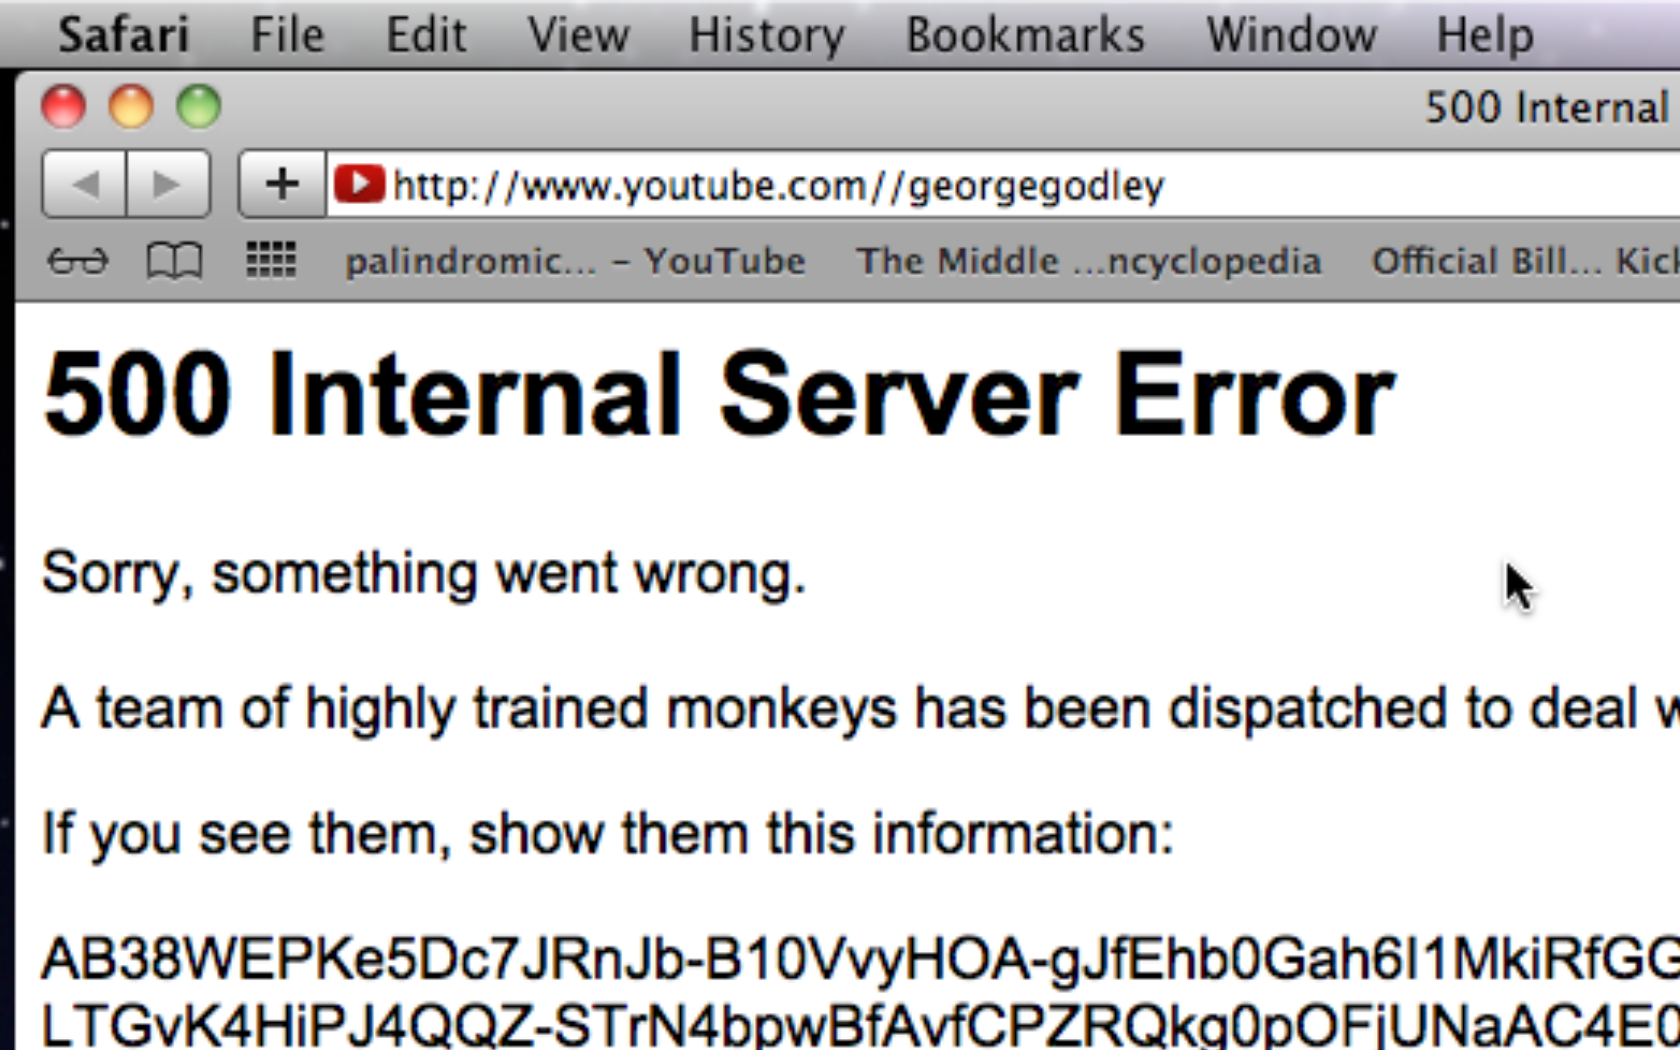 YOUTUBE:GEORGEGODLEY 500 INTERNAL SERVER ERROR Screen shot 2014-02-24 at 23.27.49